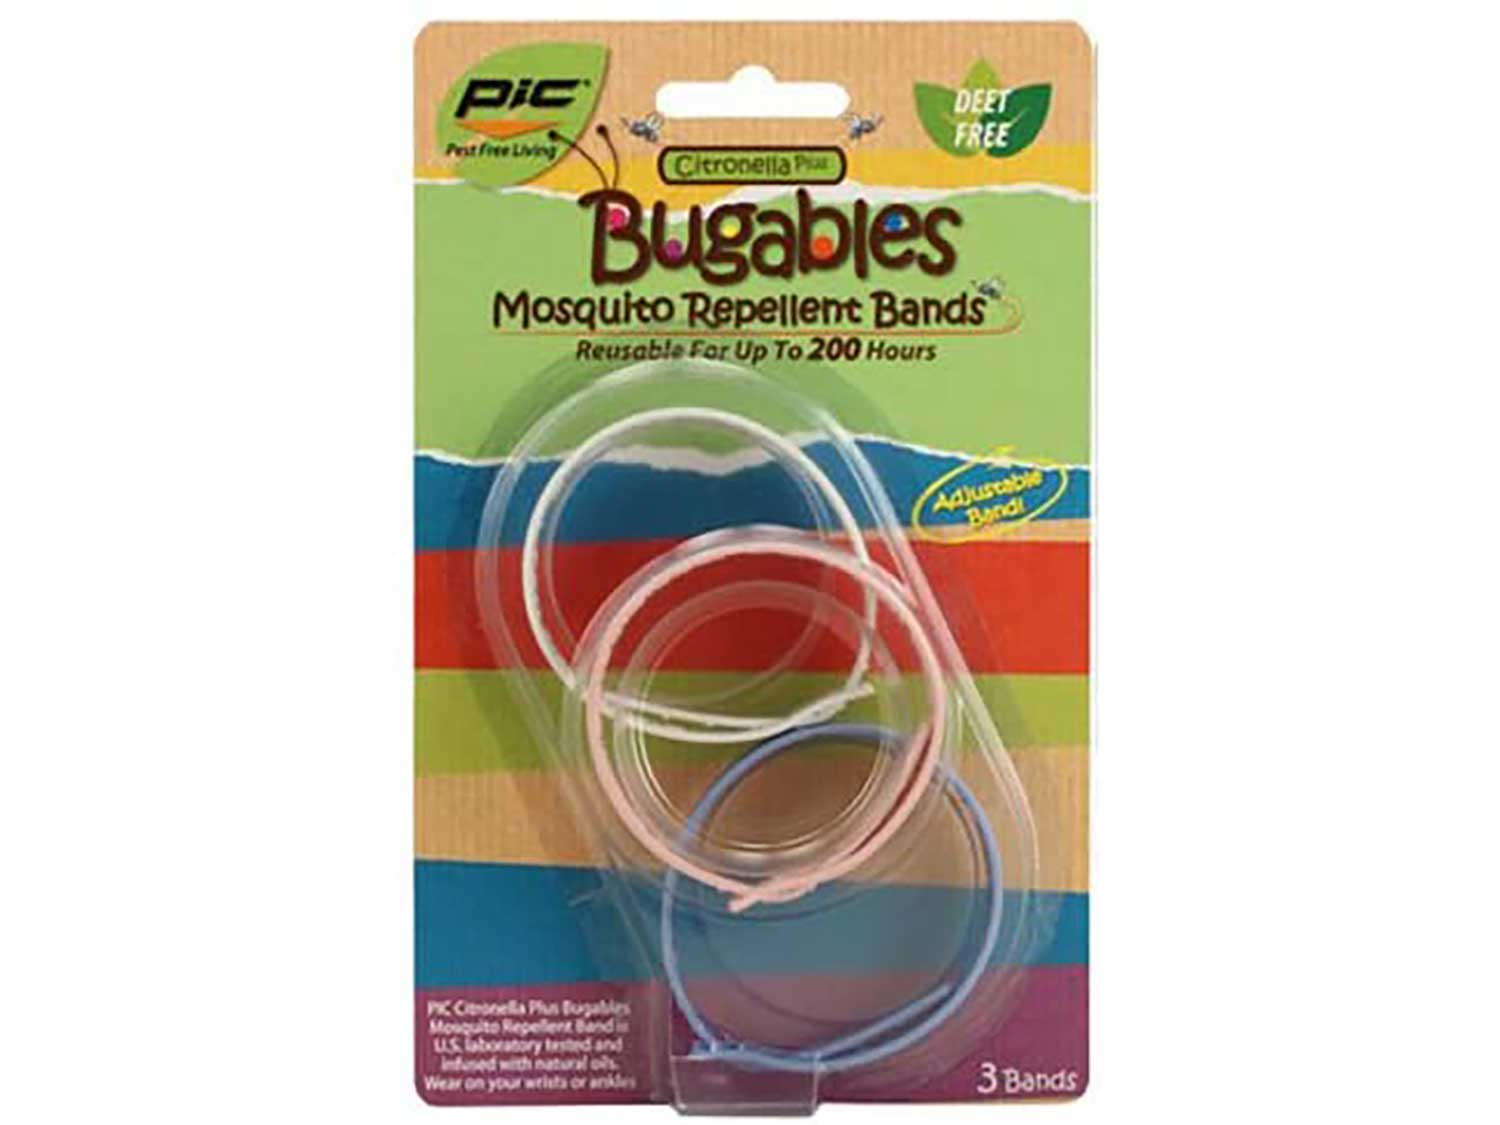 Bugables Mosquito Repellent Band